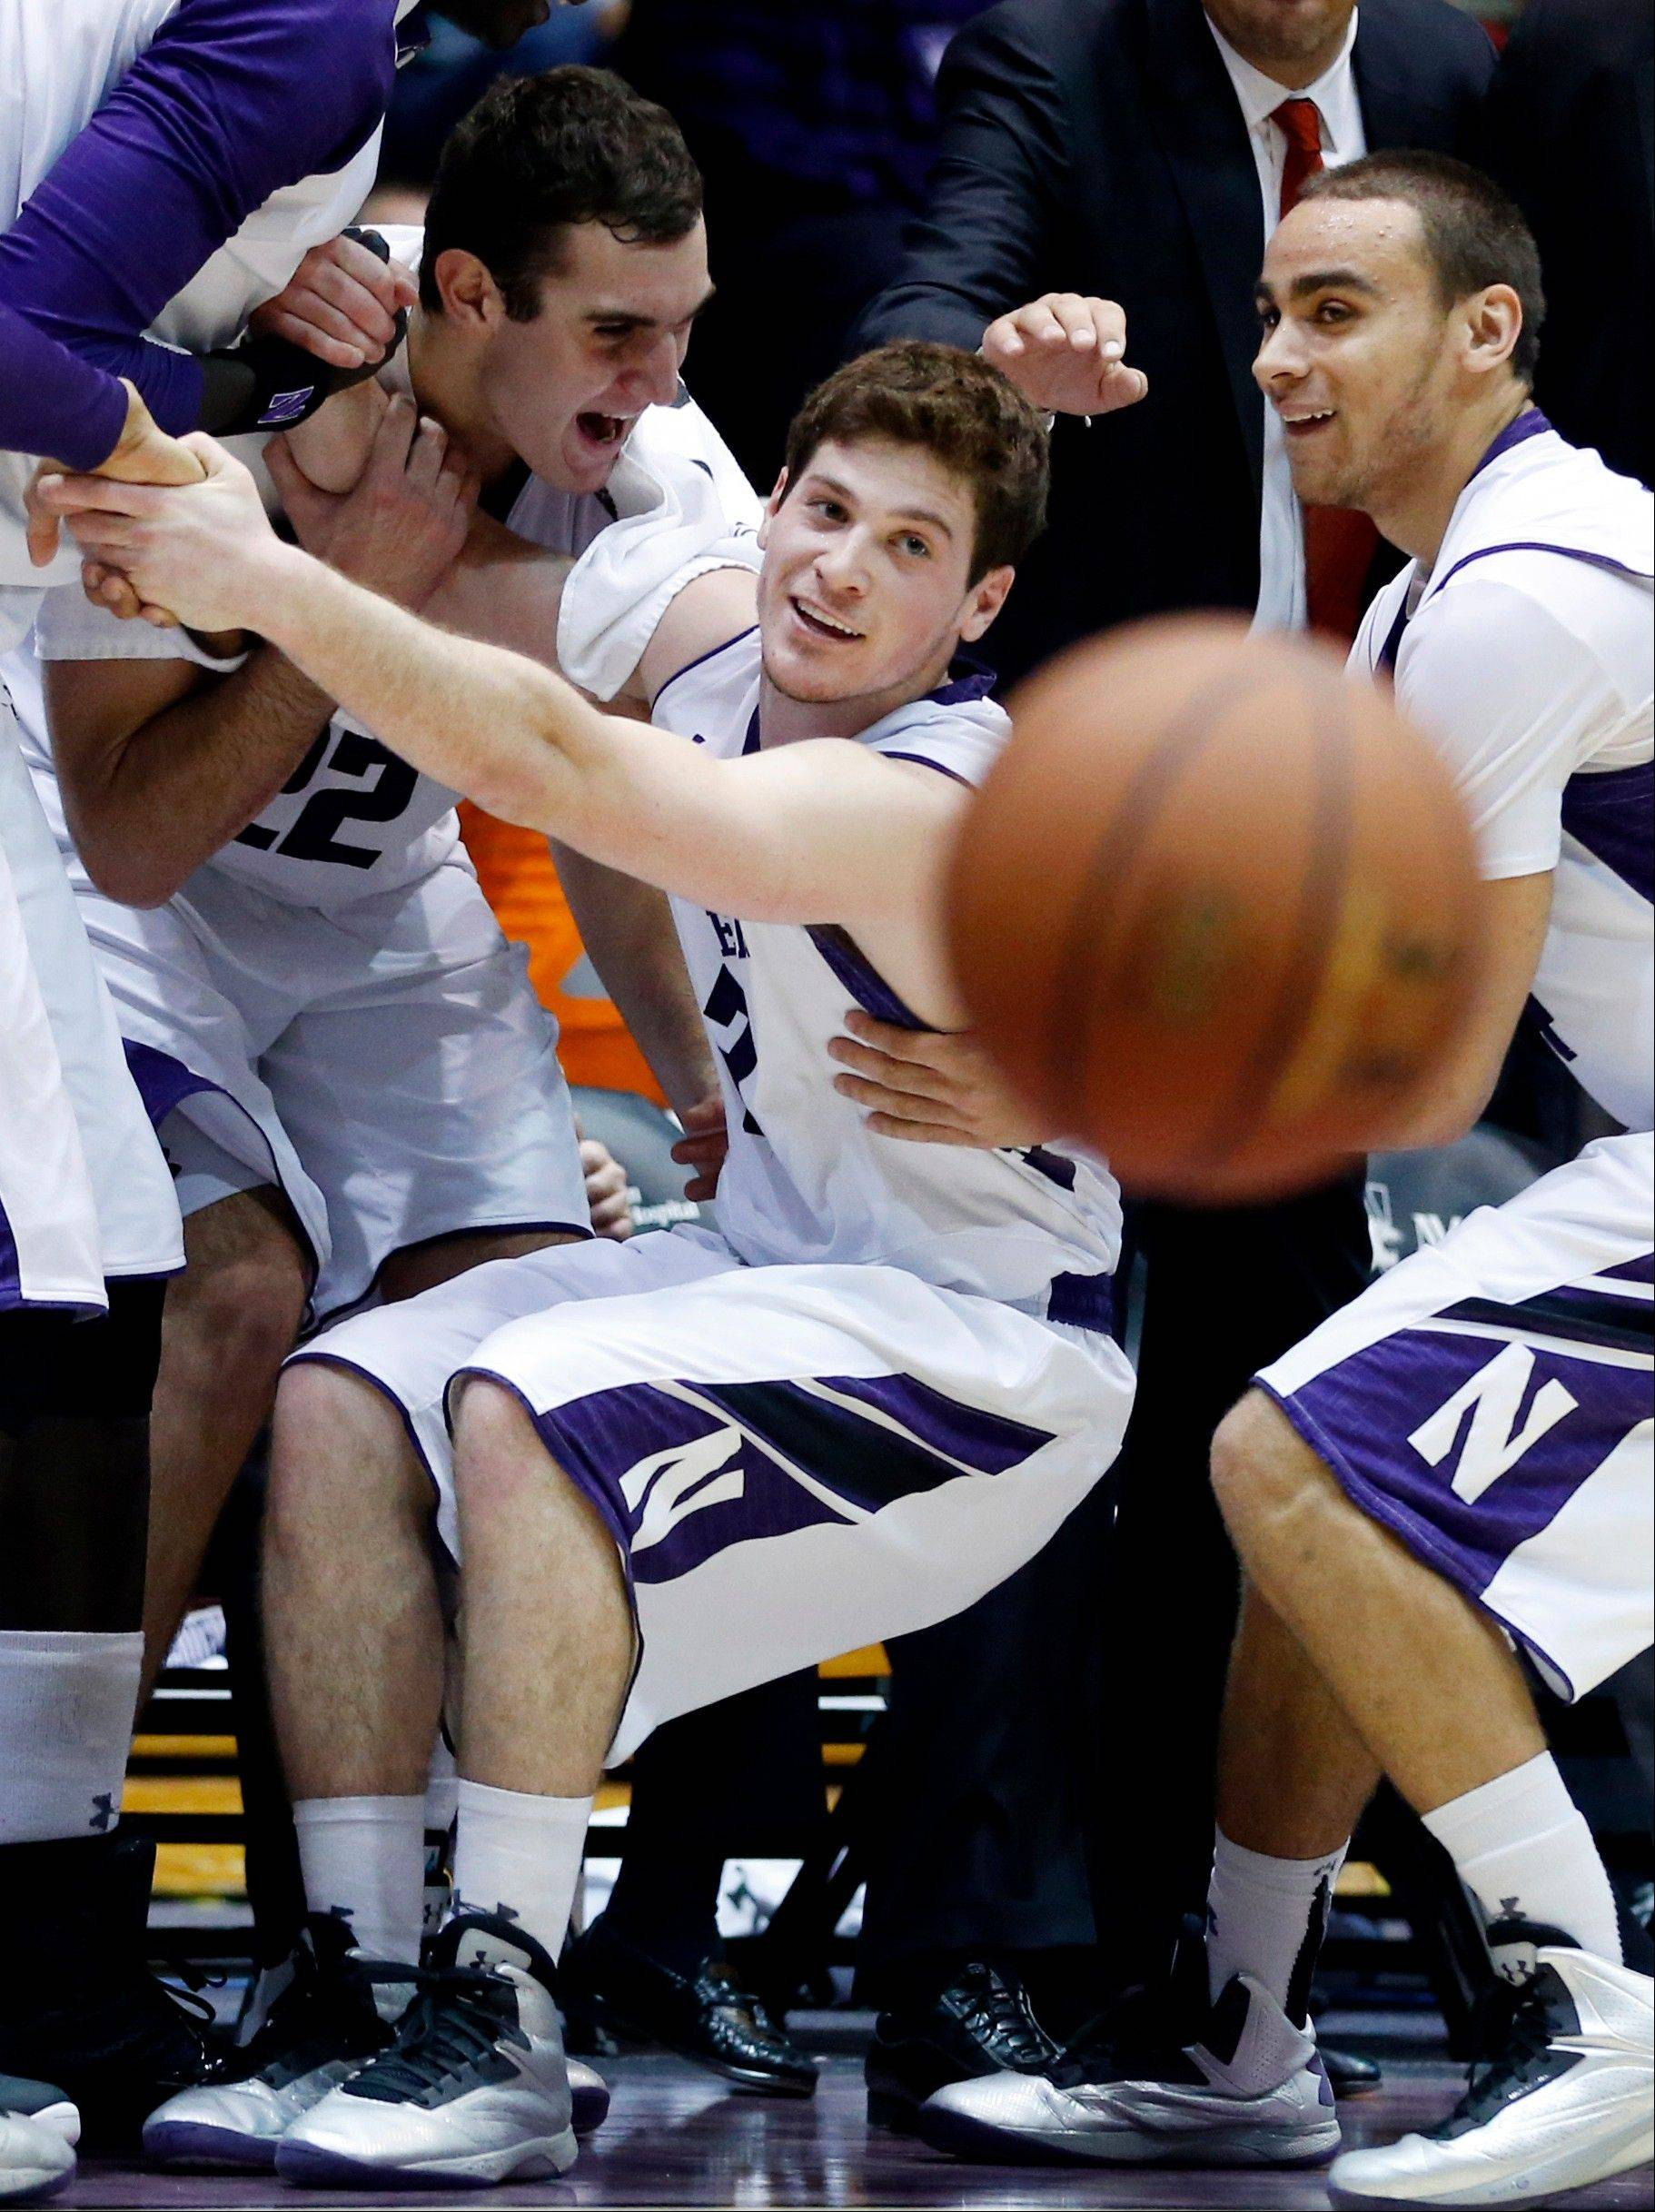 Northwestern guard Dave Sobolewski, center, celebrates with center Alex Plah, left, and guard Tre Demps after scoring a three-point basket during the second half of an NCAA college basketball game against Brown in Evanston, Ill., Sunday, Dec. 23, 2012. Northwestern won 63-42.